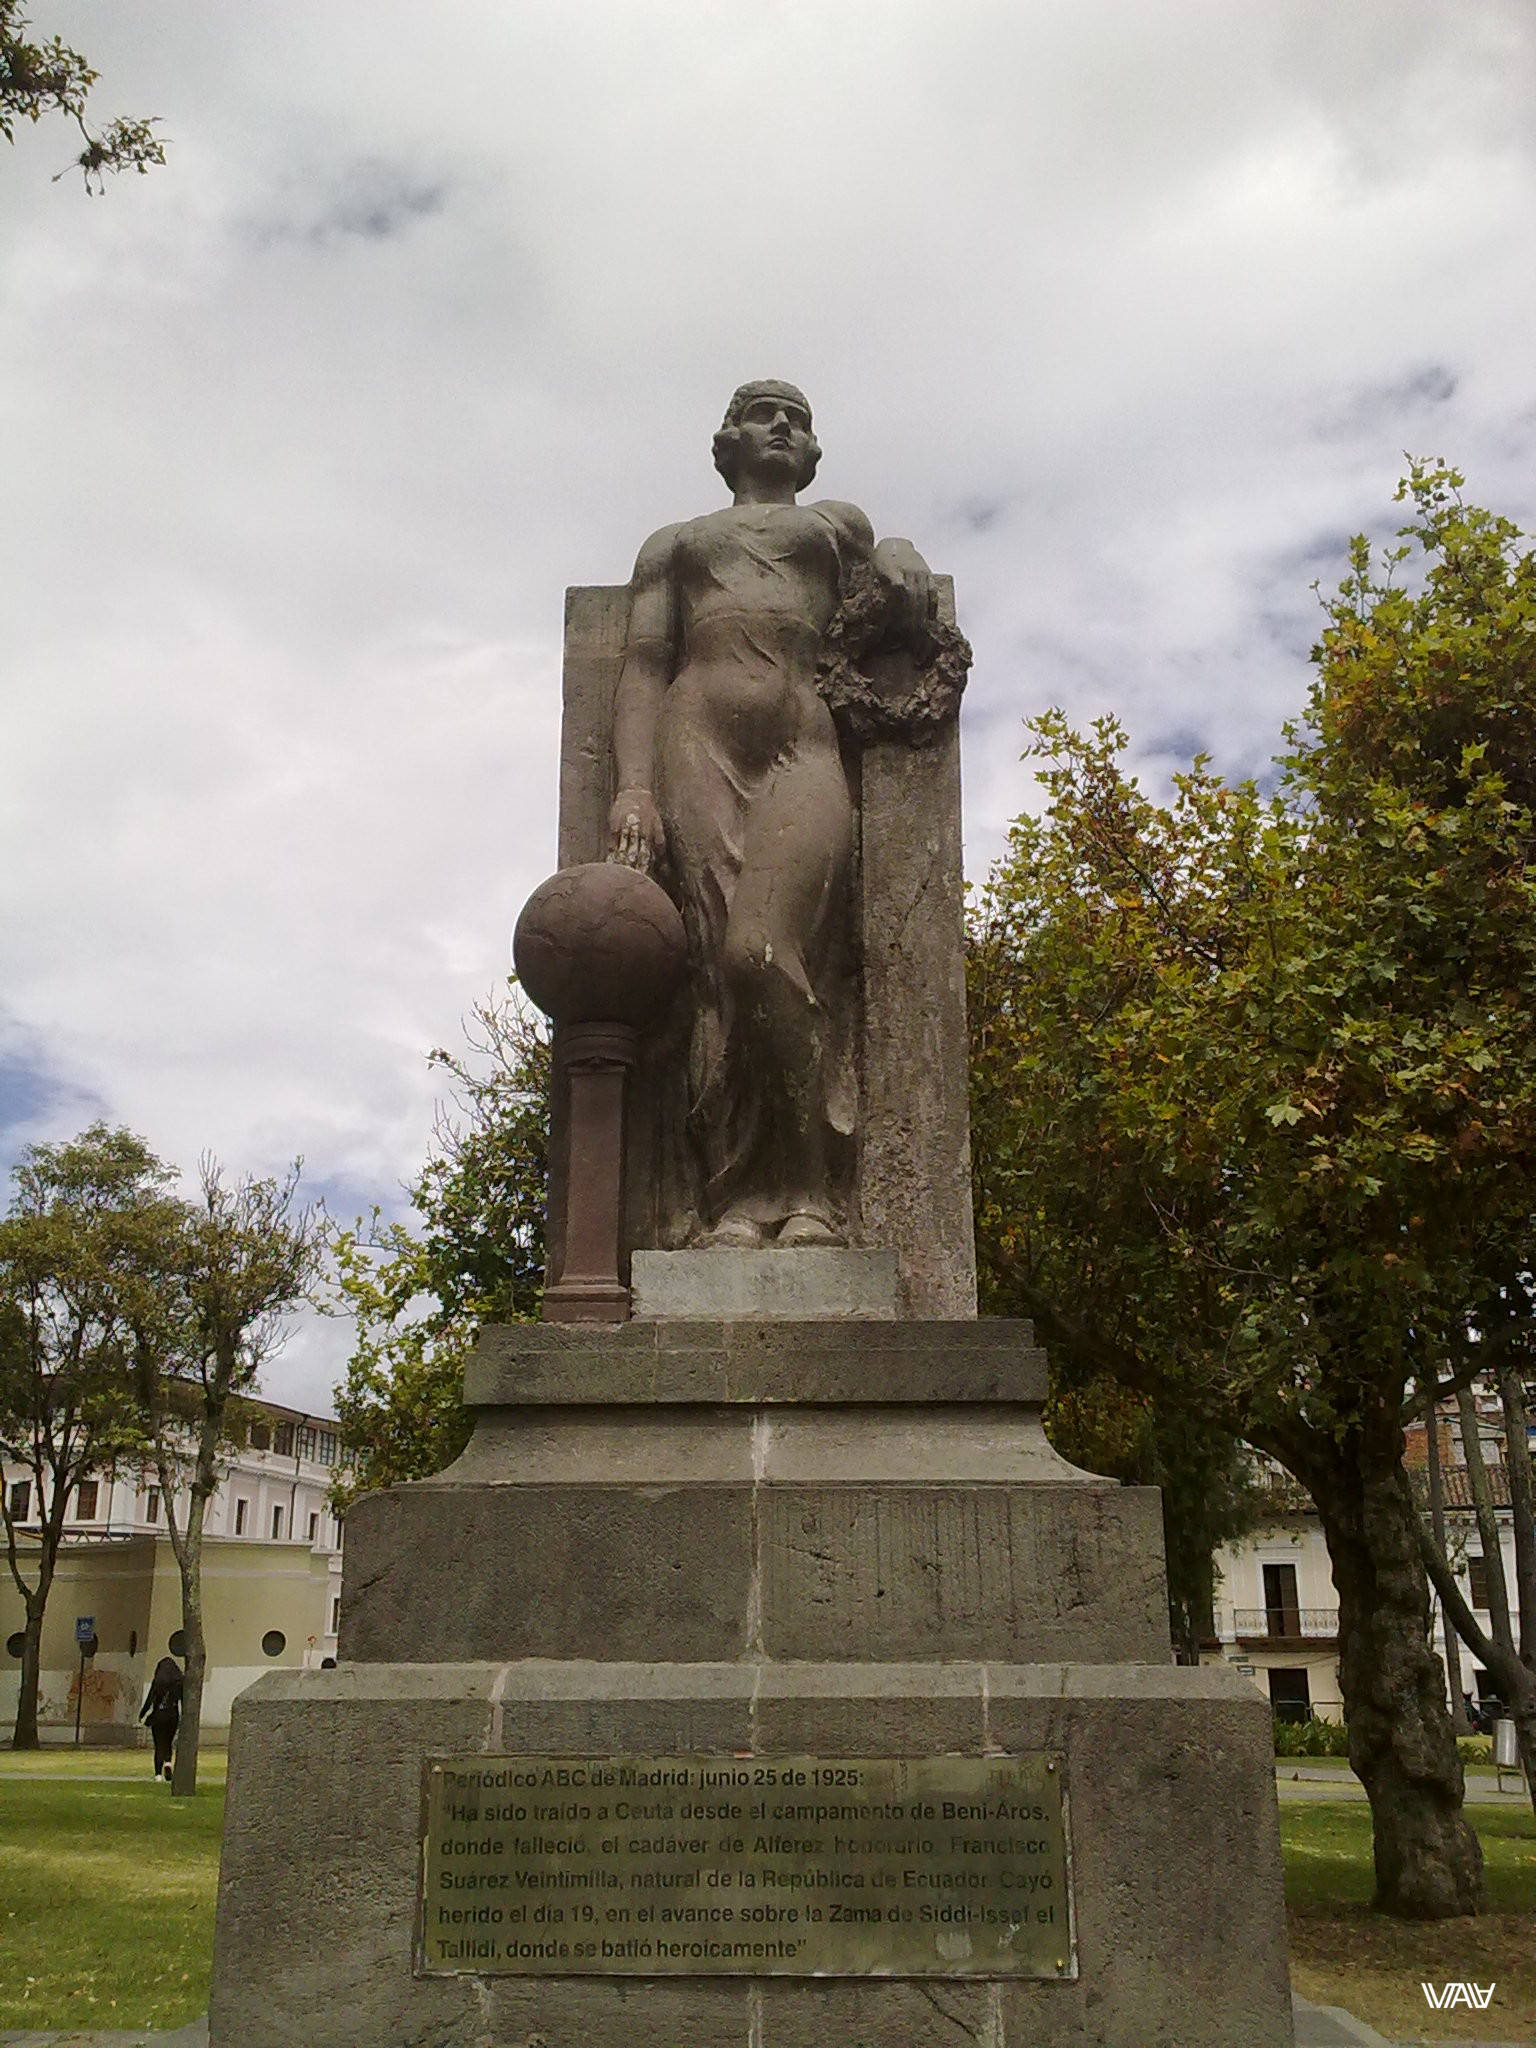 I believe it is a monument in honor of Mother-Nature. Quito, Ecuador